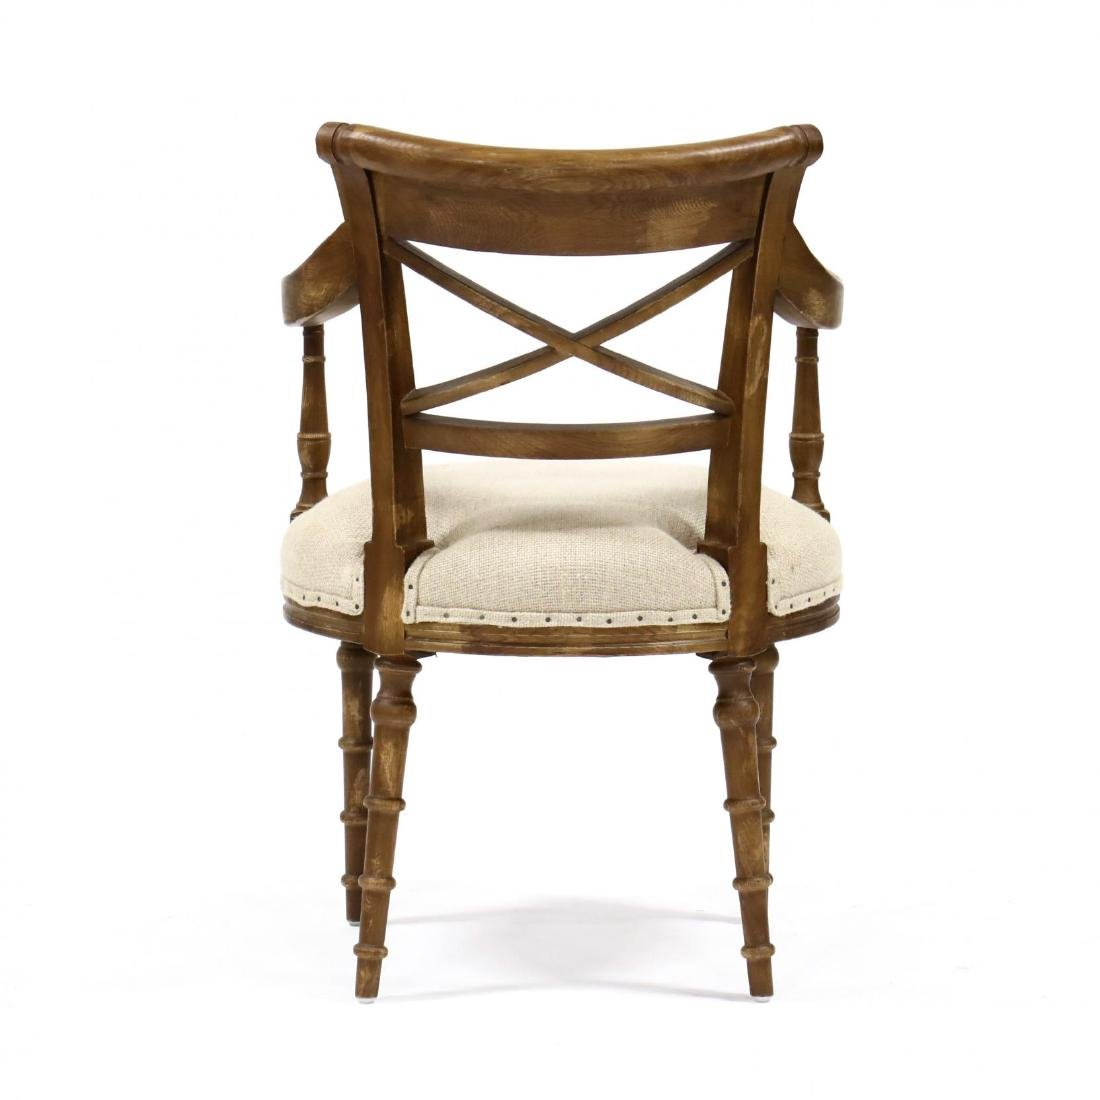 Park Hill Collection, Pair of Regency Style Arm Chairs - 3